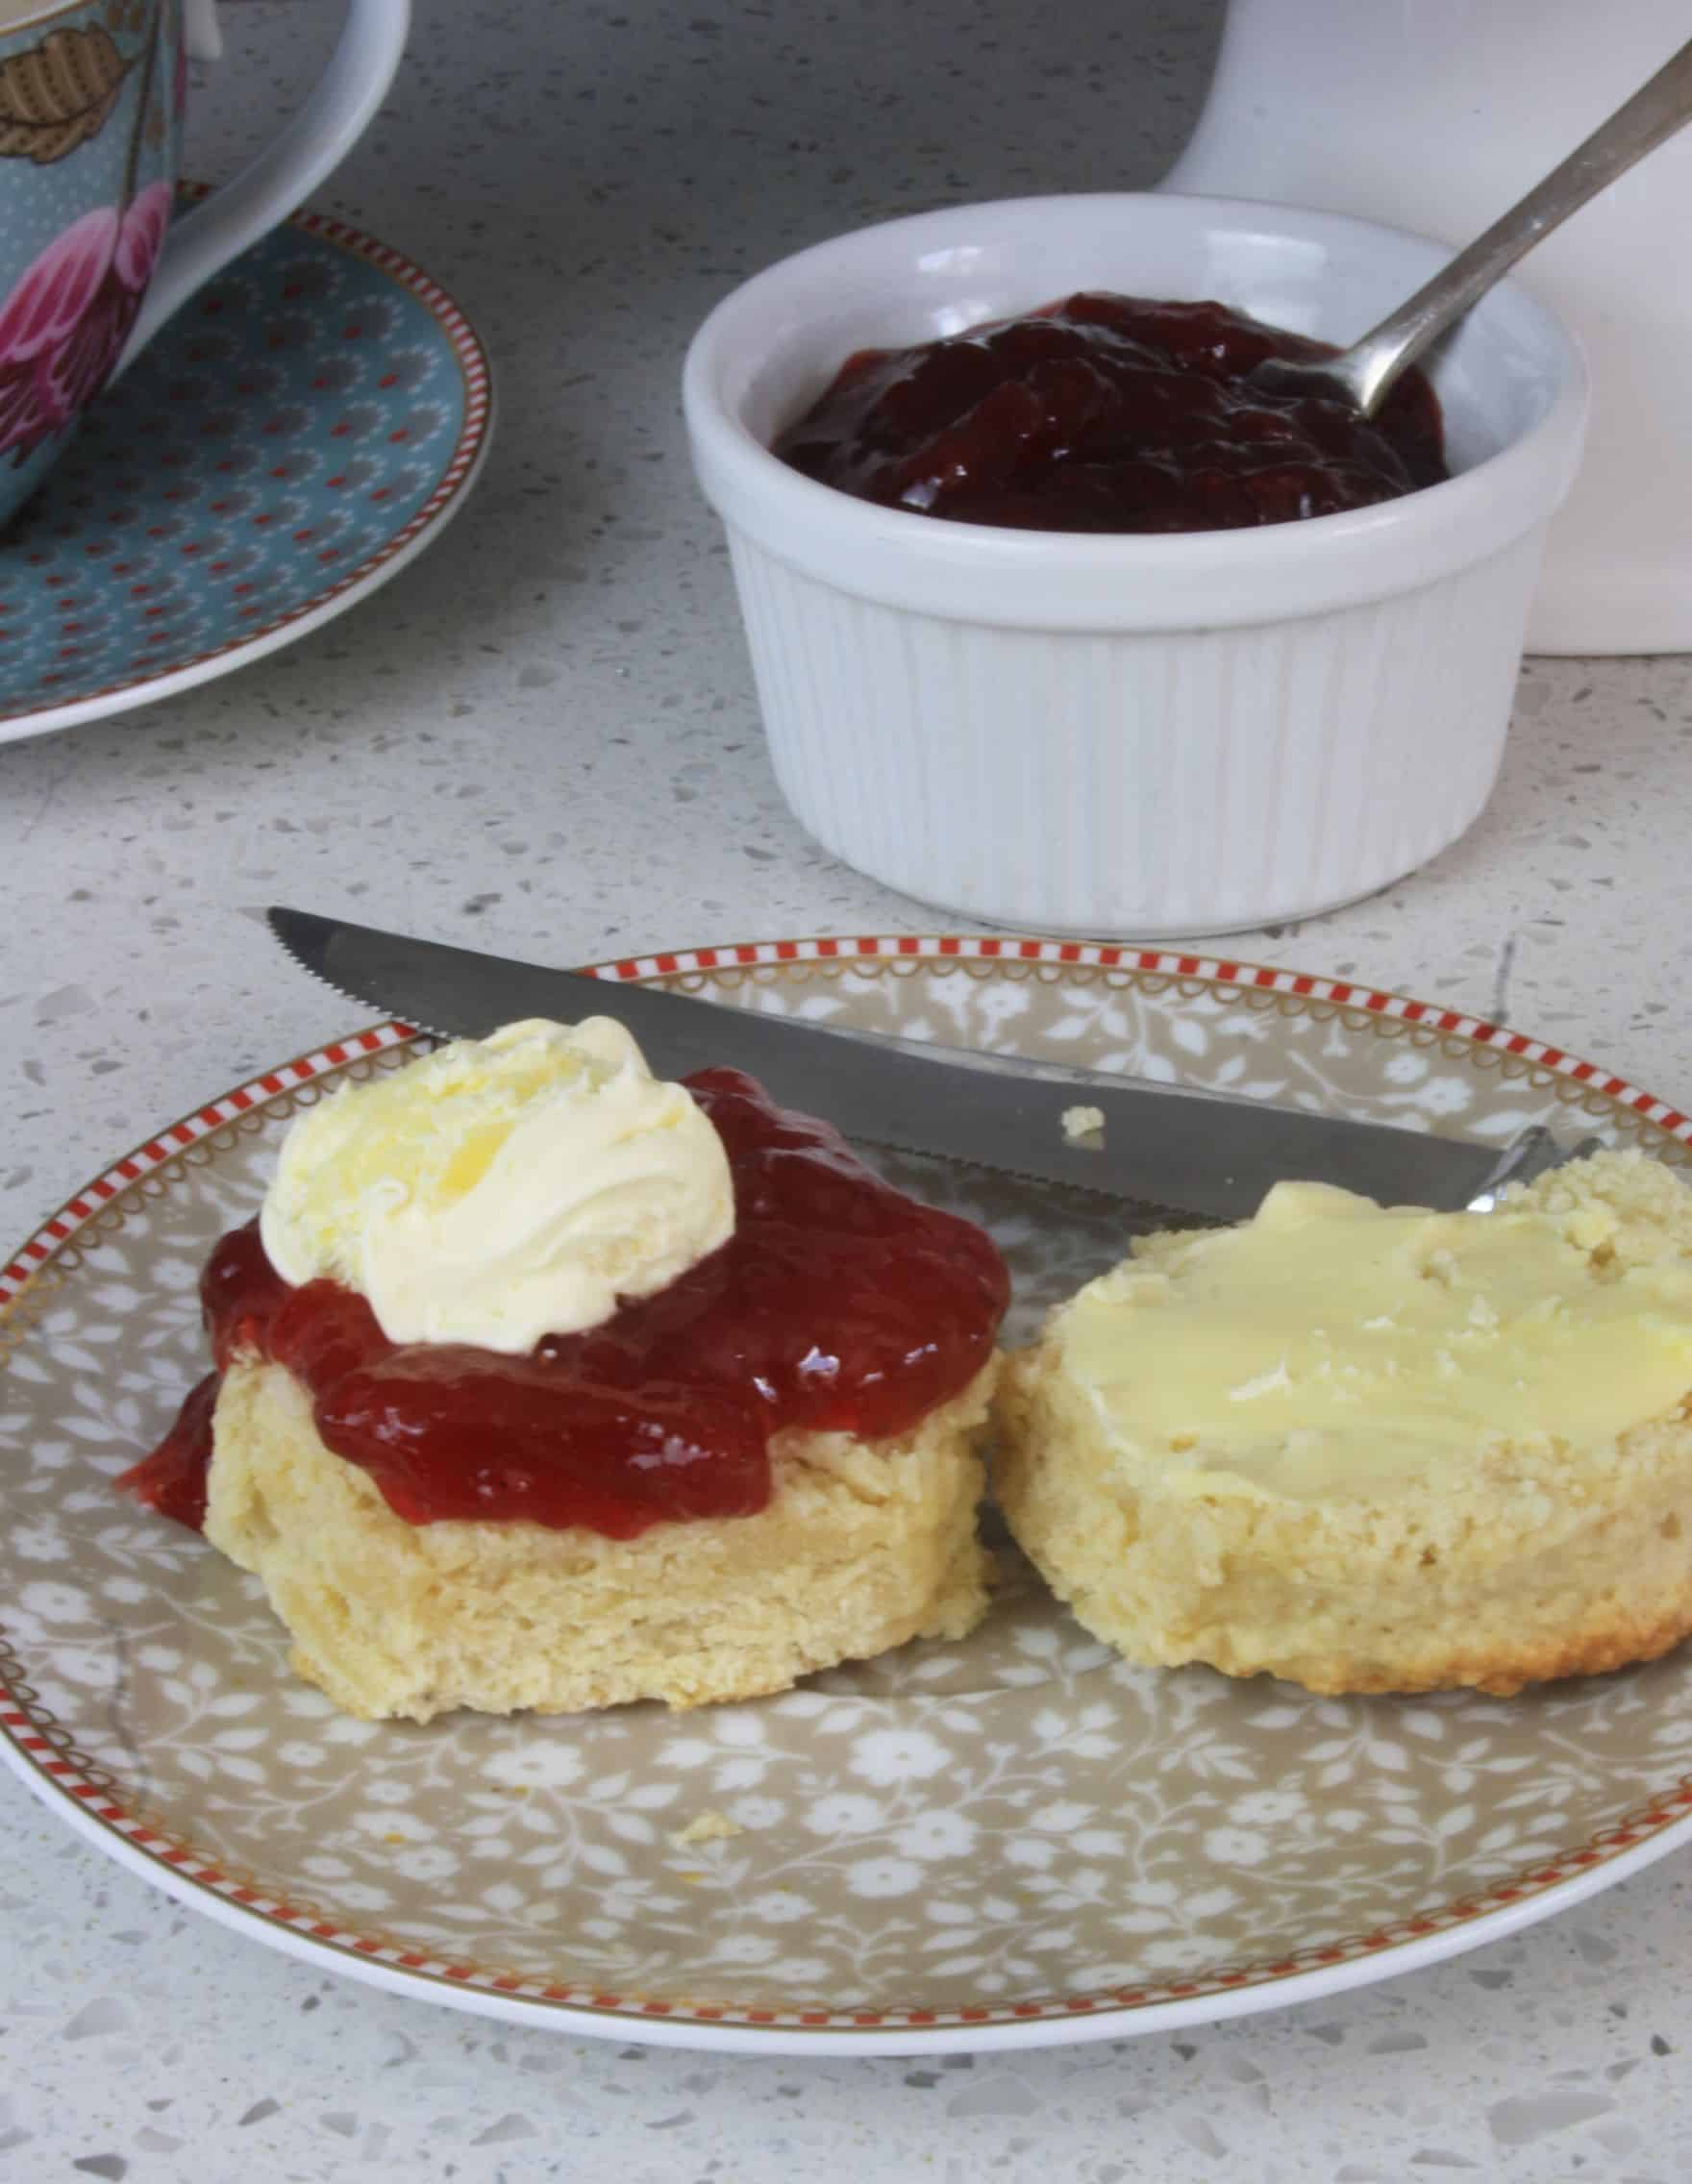 Plate with a cut scone topped with jam and cream